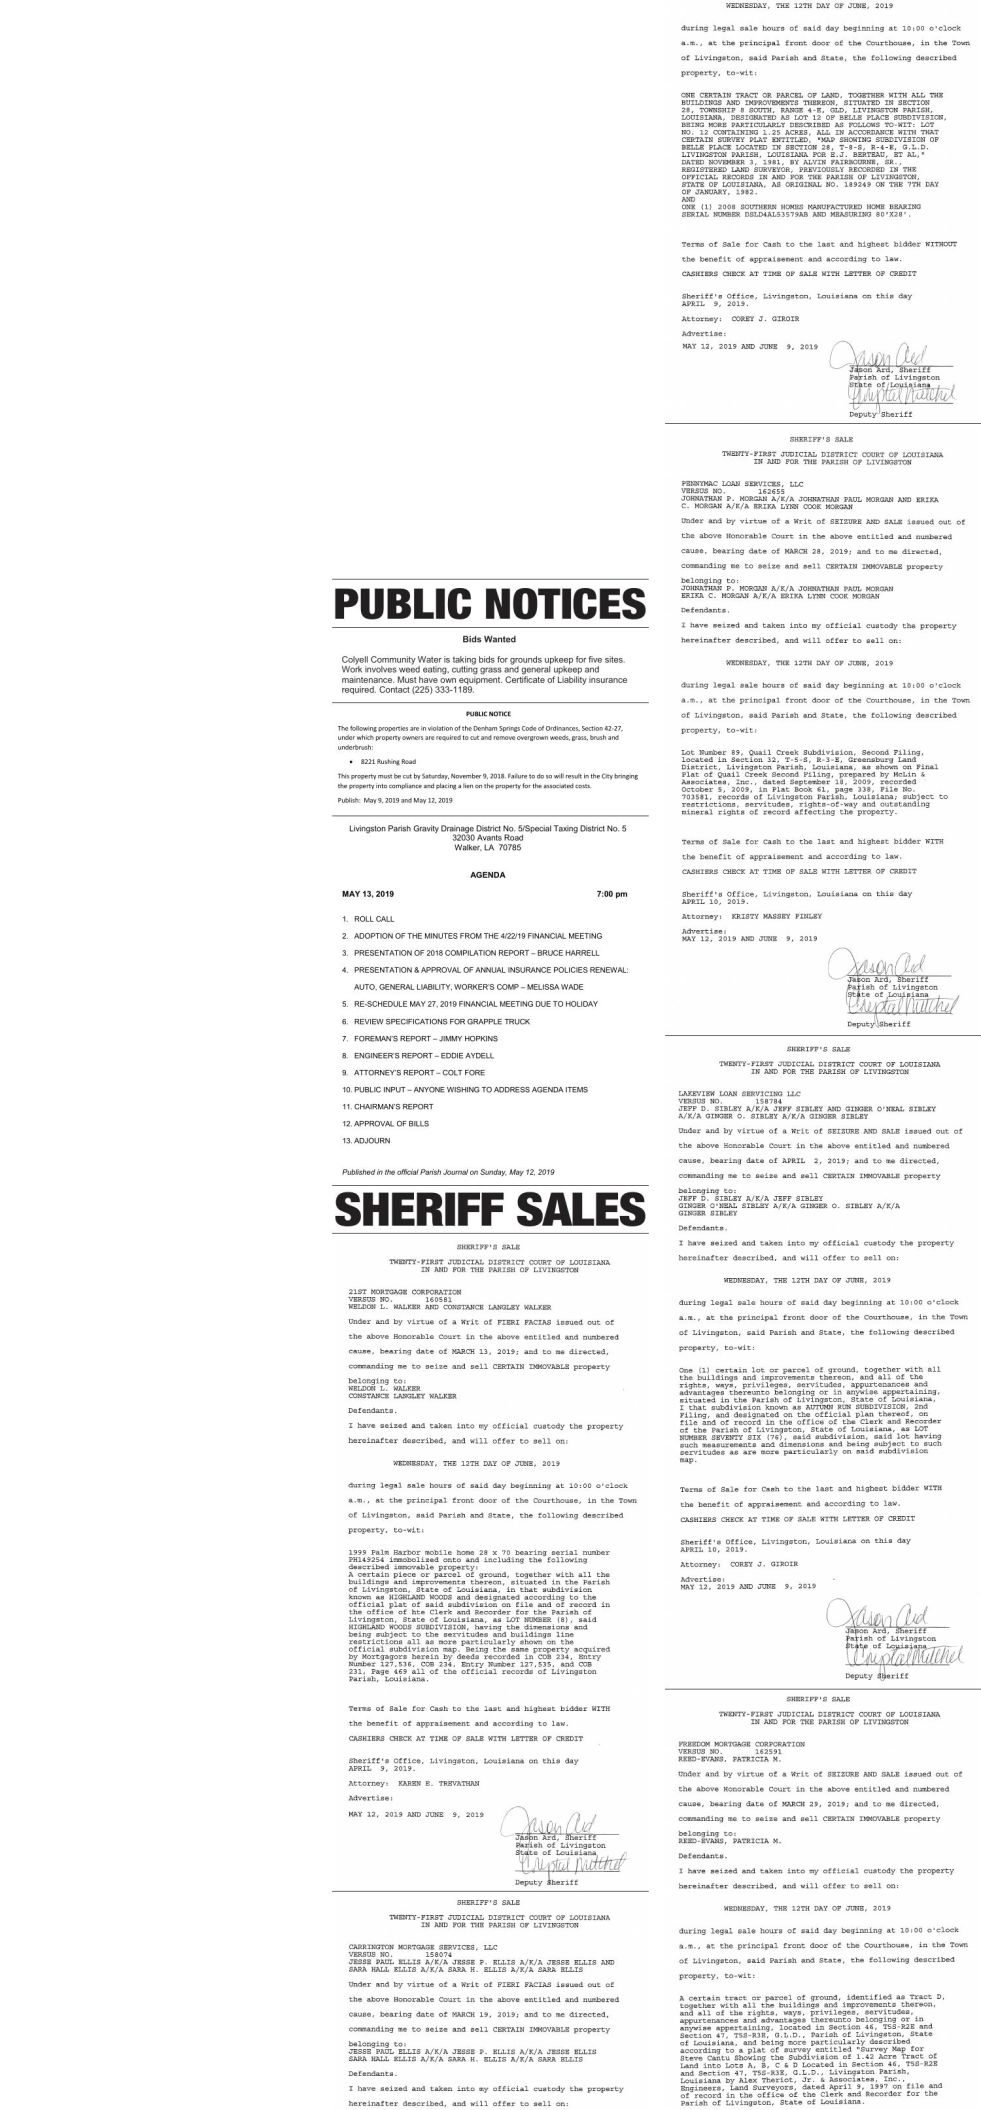 Public Notices published May 12, 2019